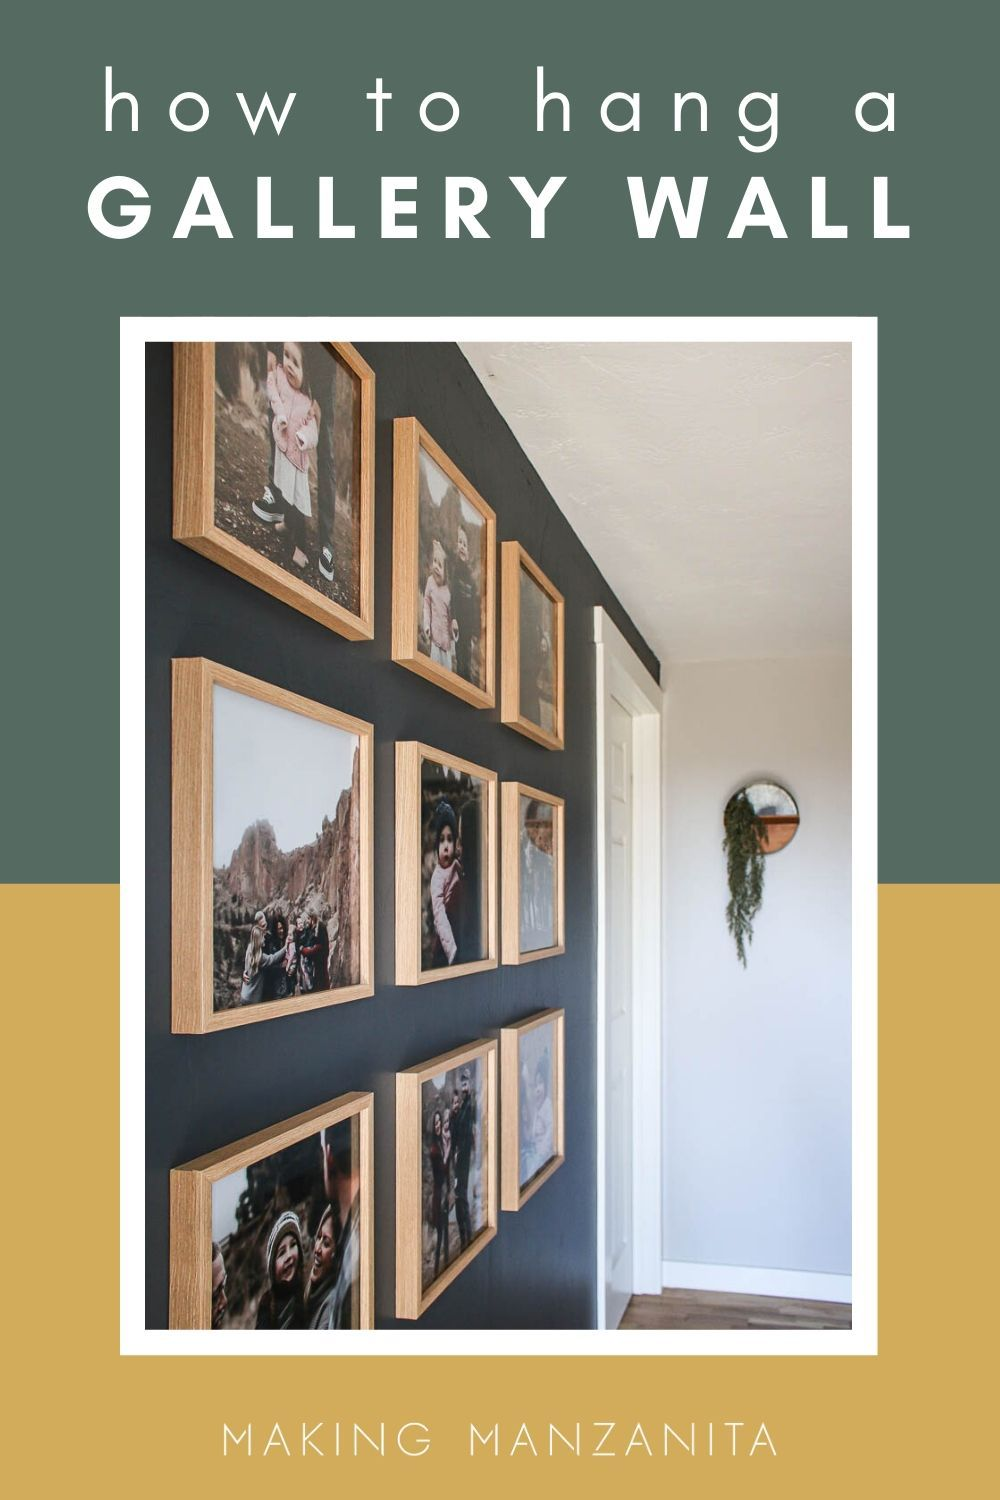 How To Hang A Grid Gallery Wall Making Manzanita Gallery Wall Family Pictures On Wall Family Photo Wall